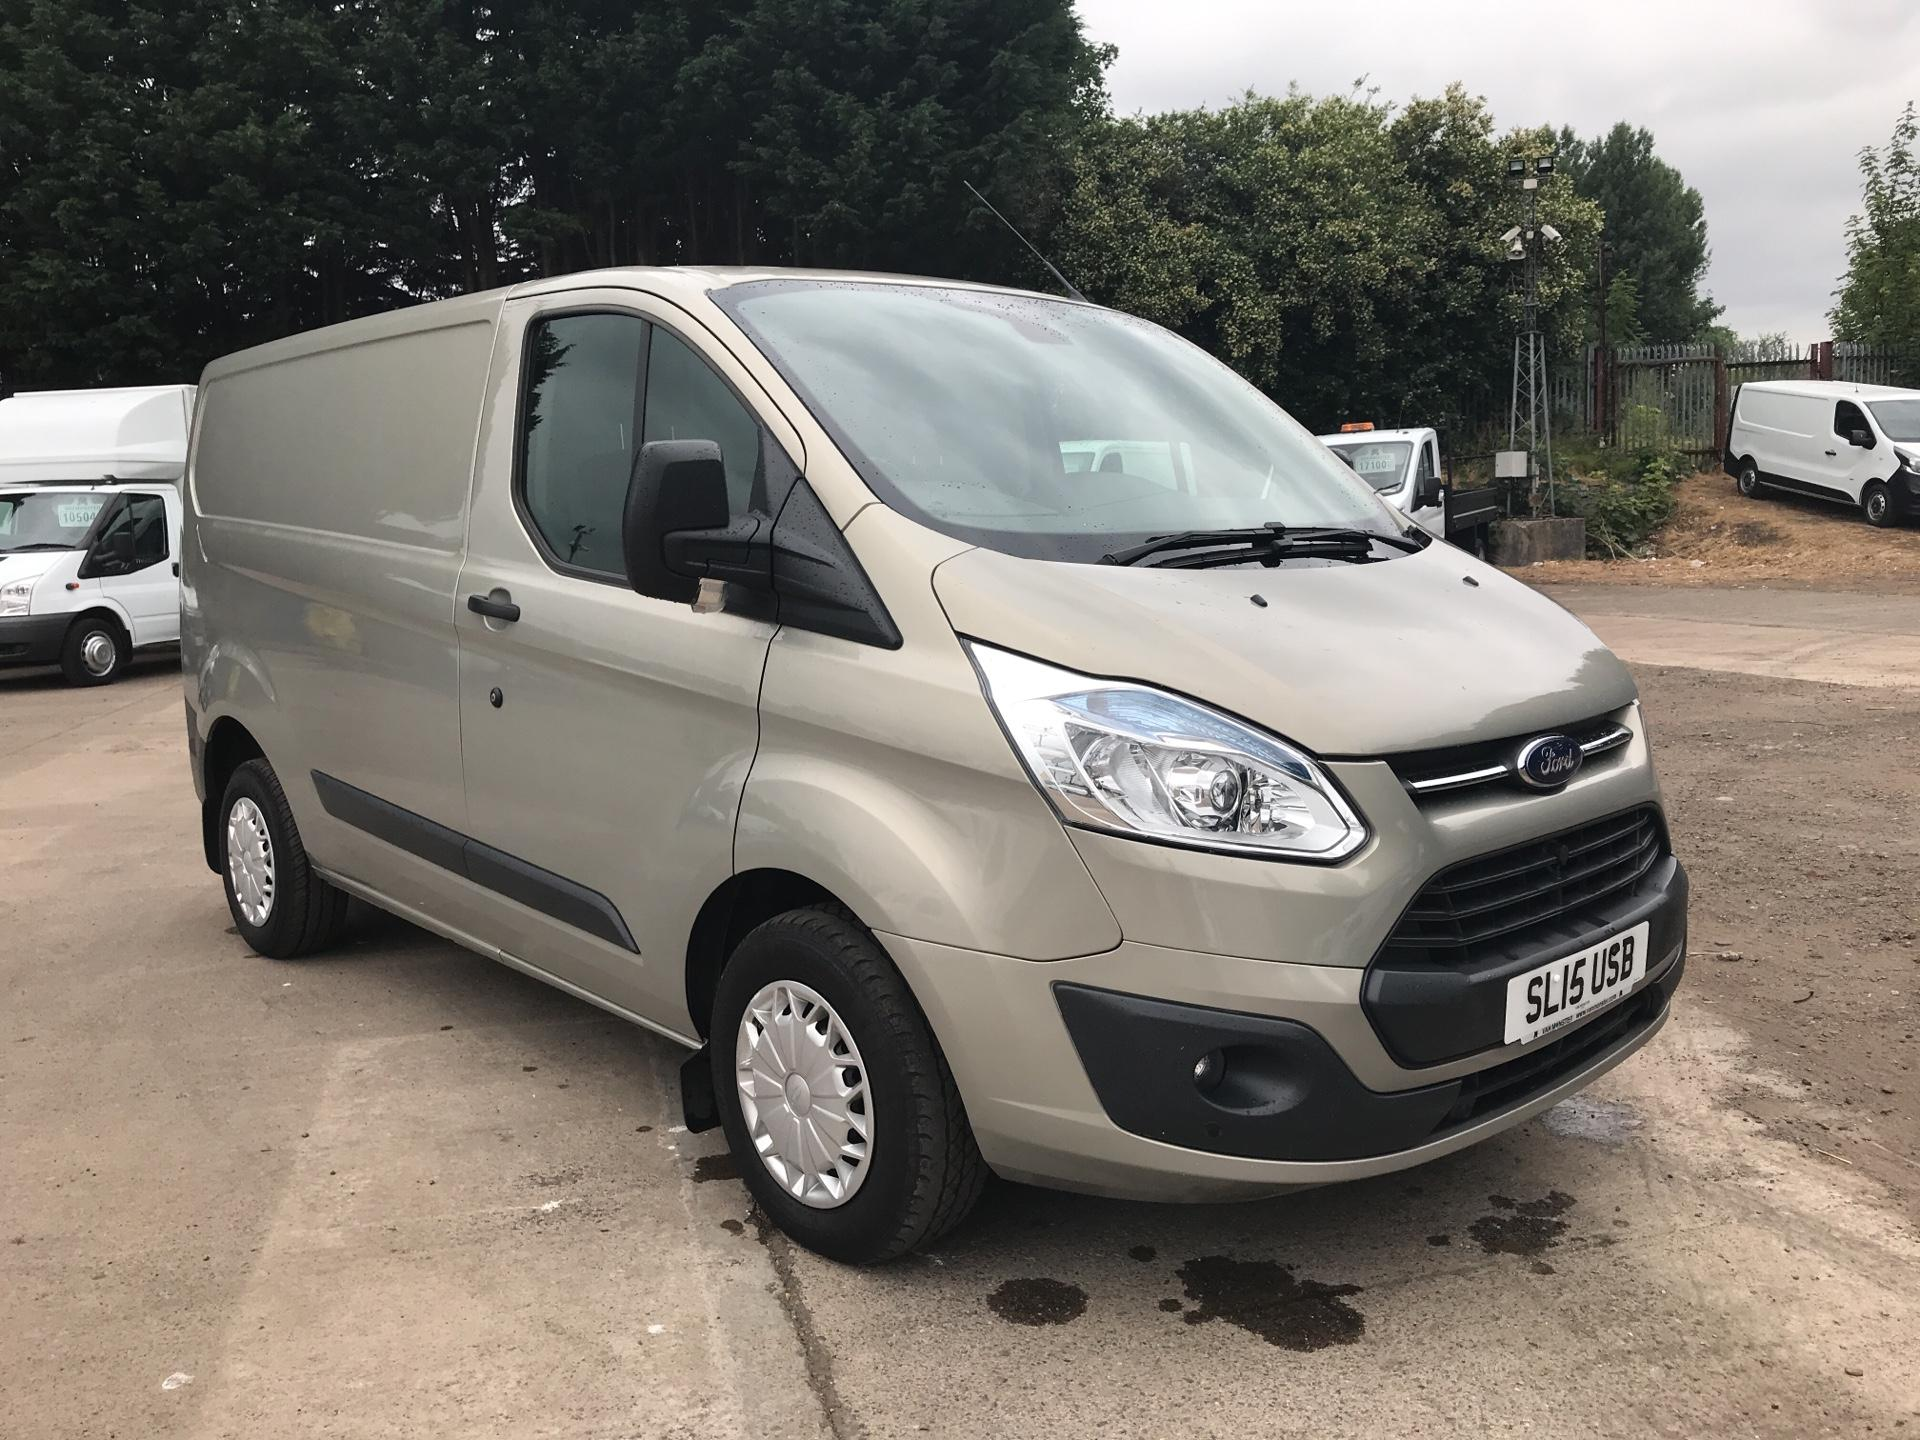 2015 Ford Transit Custom 270 L1 H1 2.2 Tdci 125Ps Low Roof Trend Van (SL15USB)